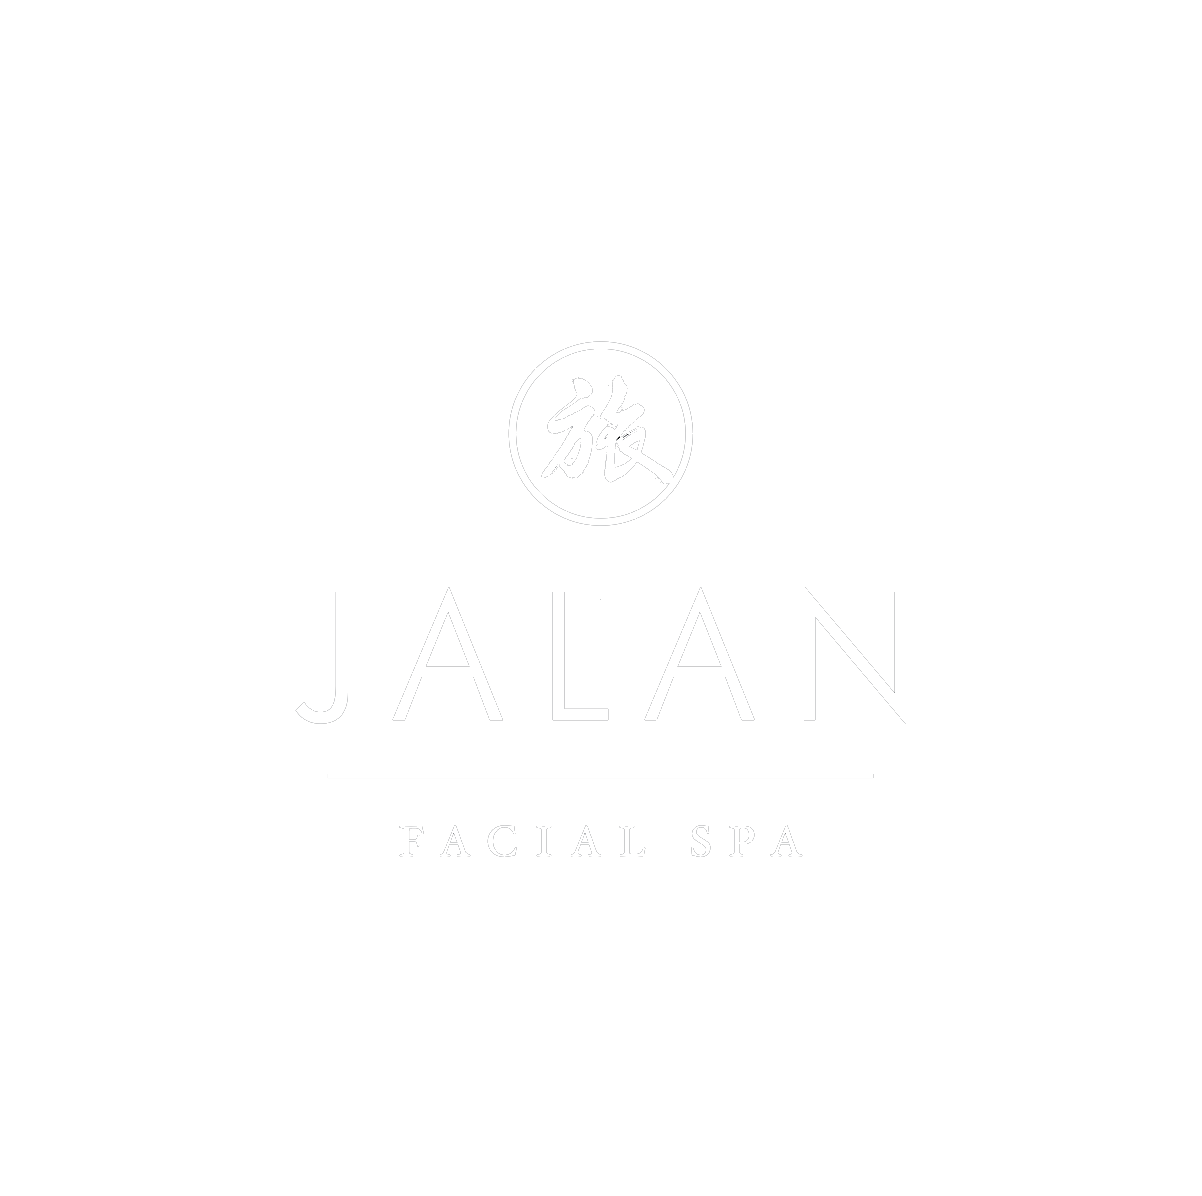 Jalan Facial Spa